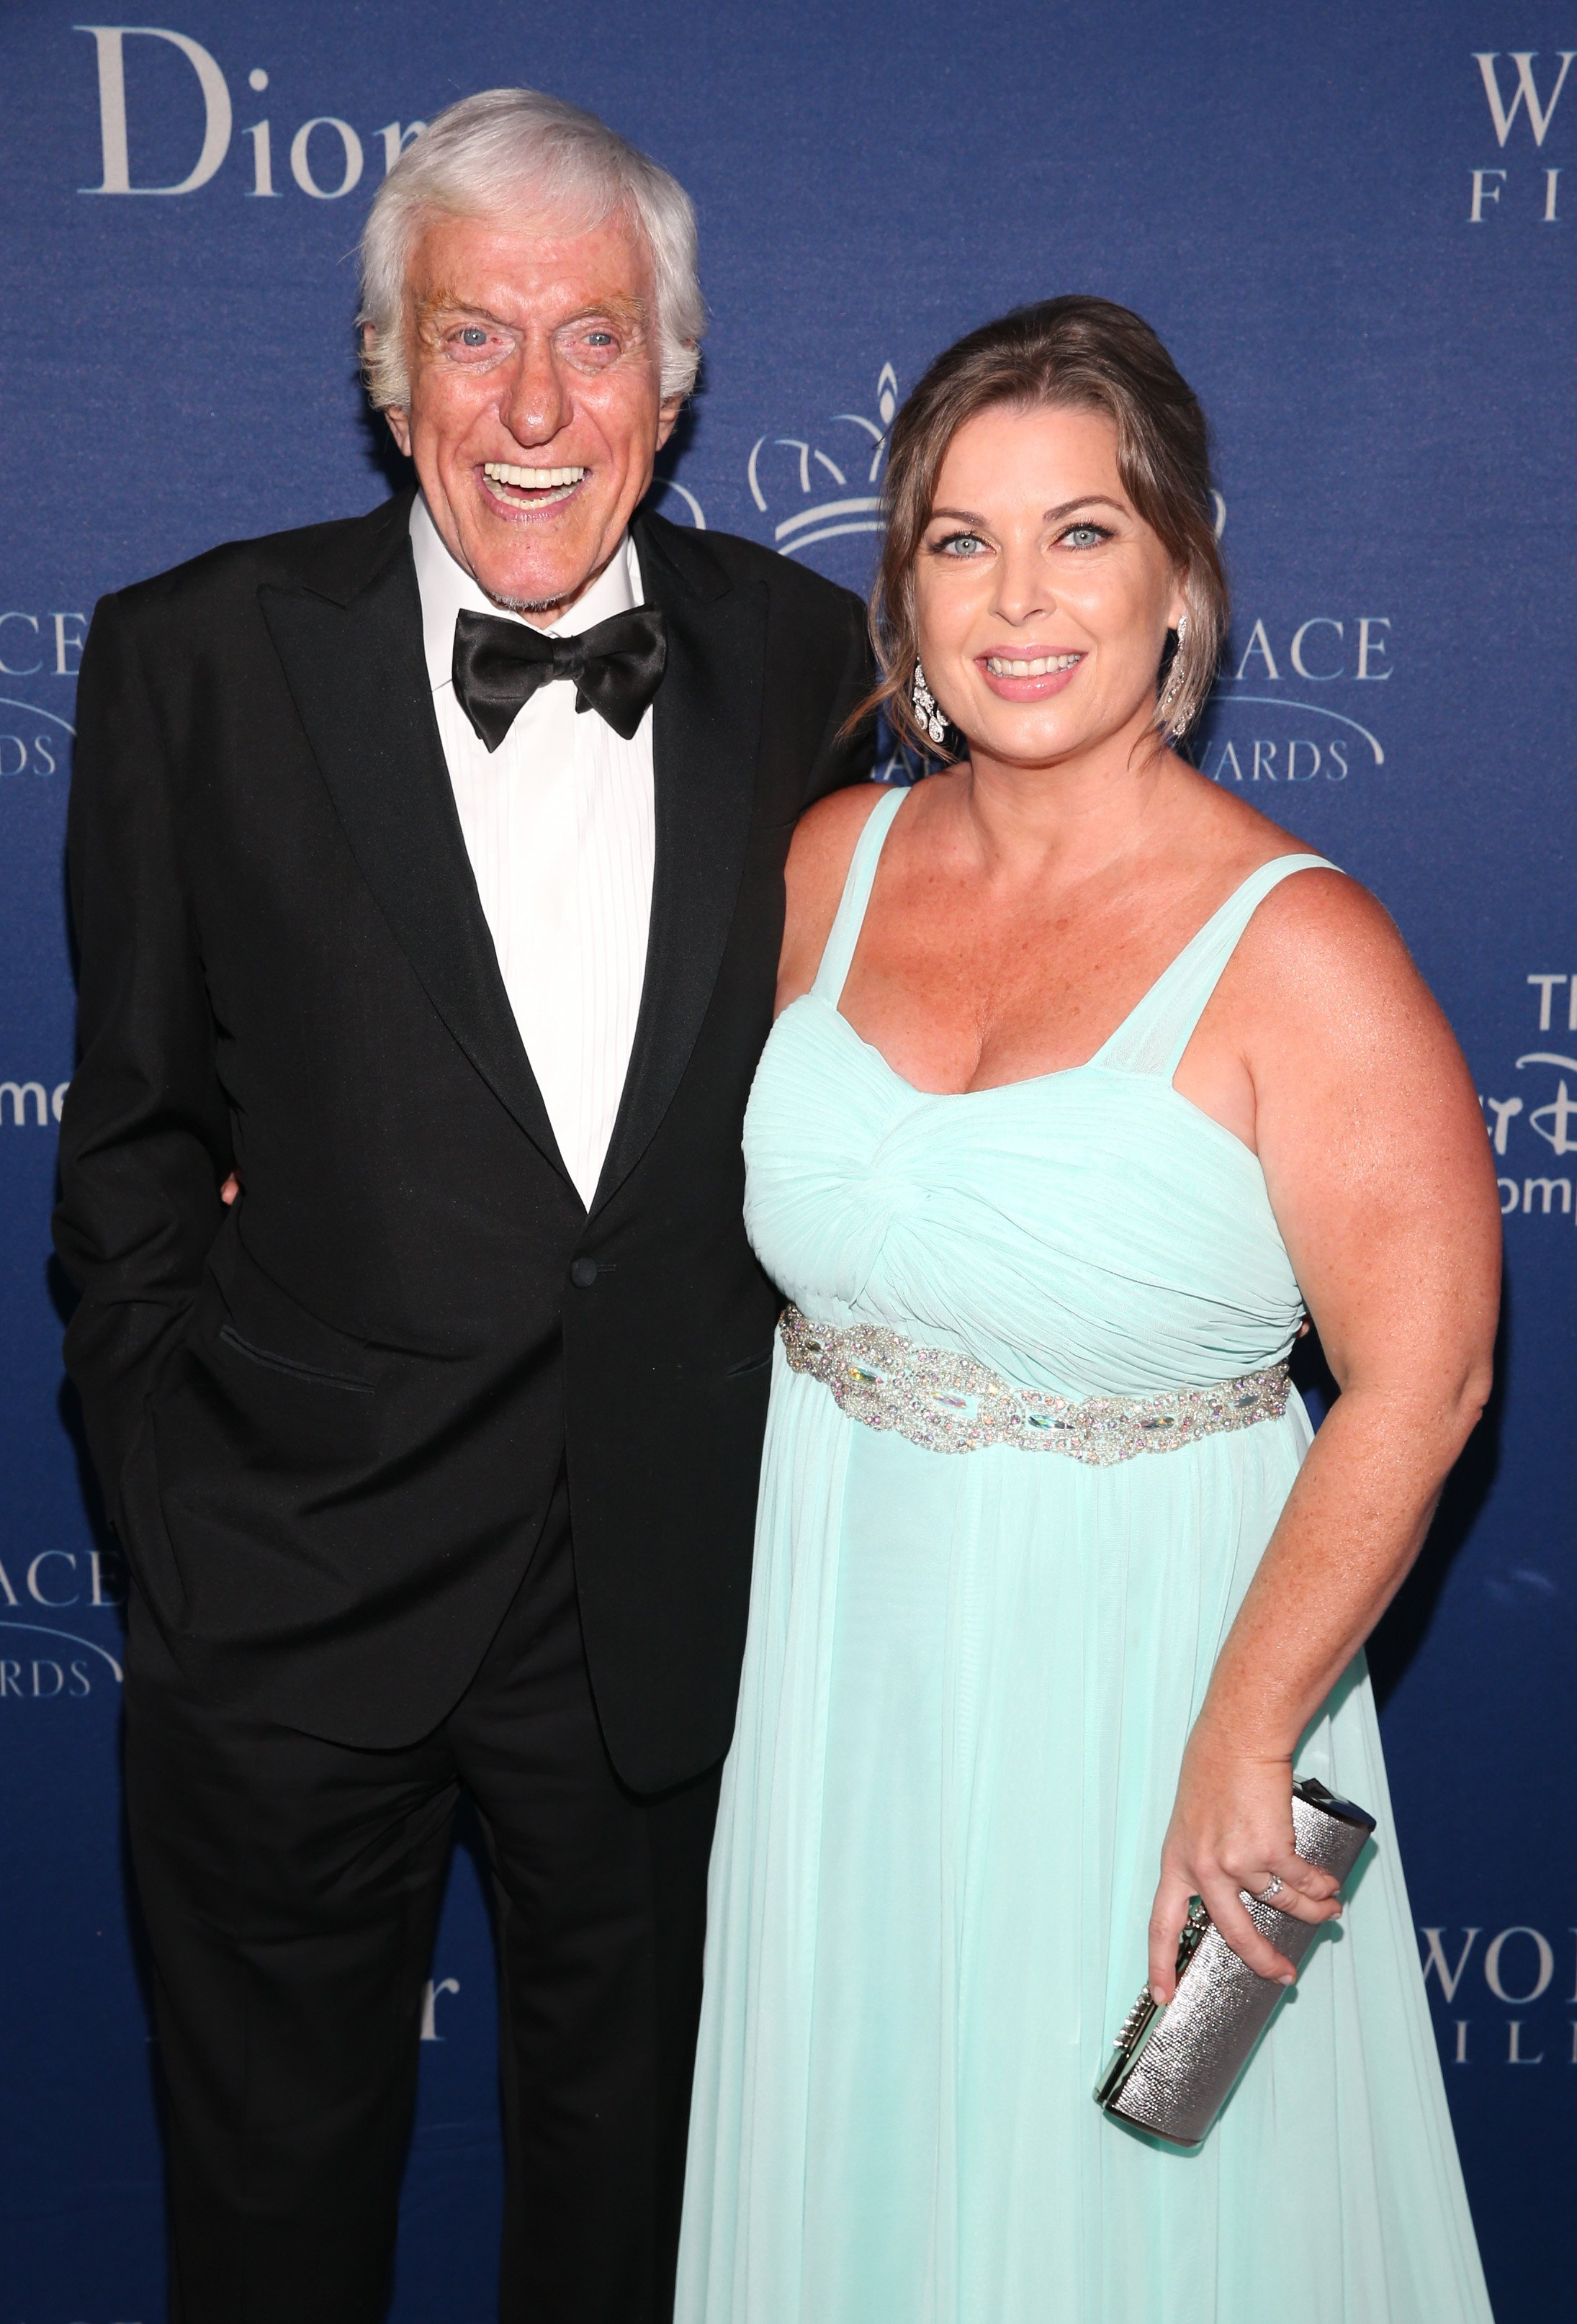 Dick Van Dyke and his wife Arlene Silver    Source: Getty Images